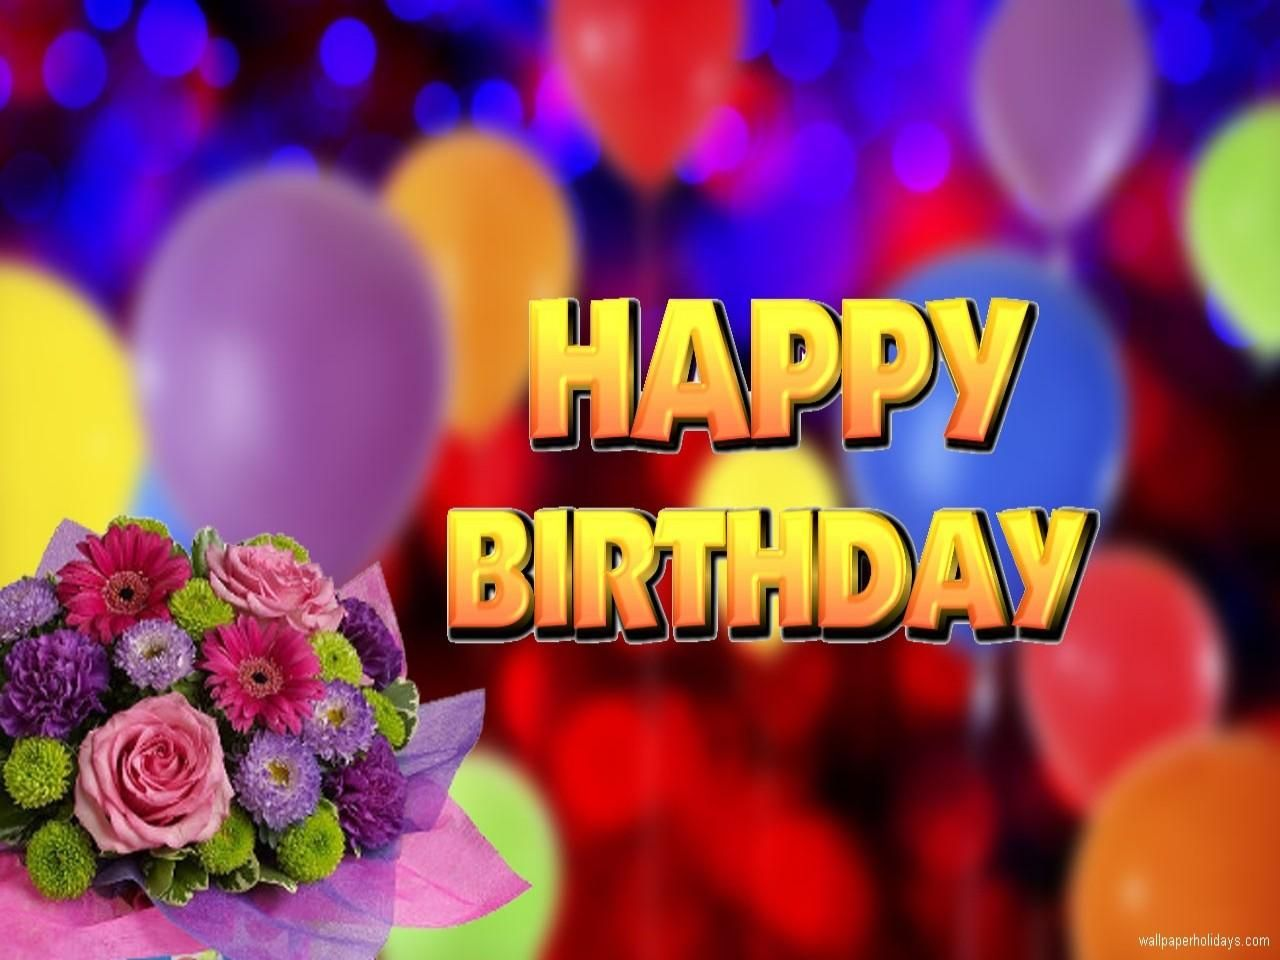 Image Result For Happy Birthday Flowers Hd Wallpaper Happy Birthday Flower Birthday Wishes Birthday Flowers